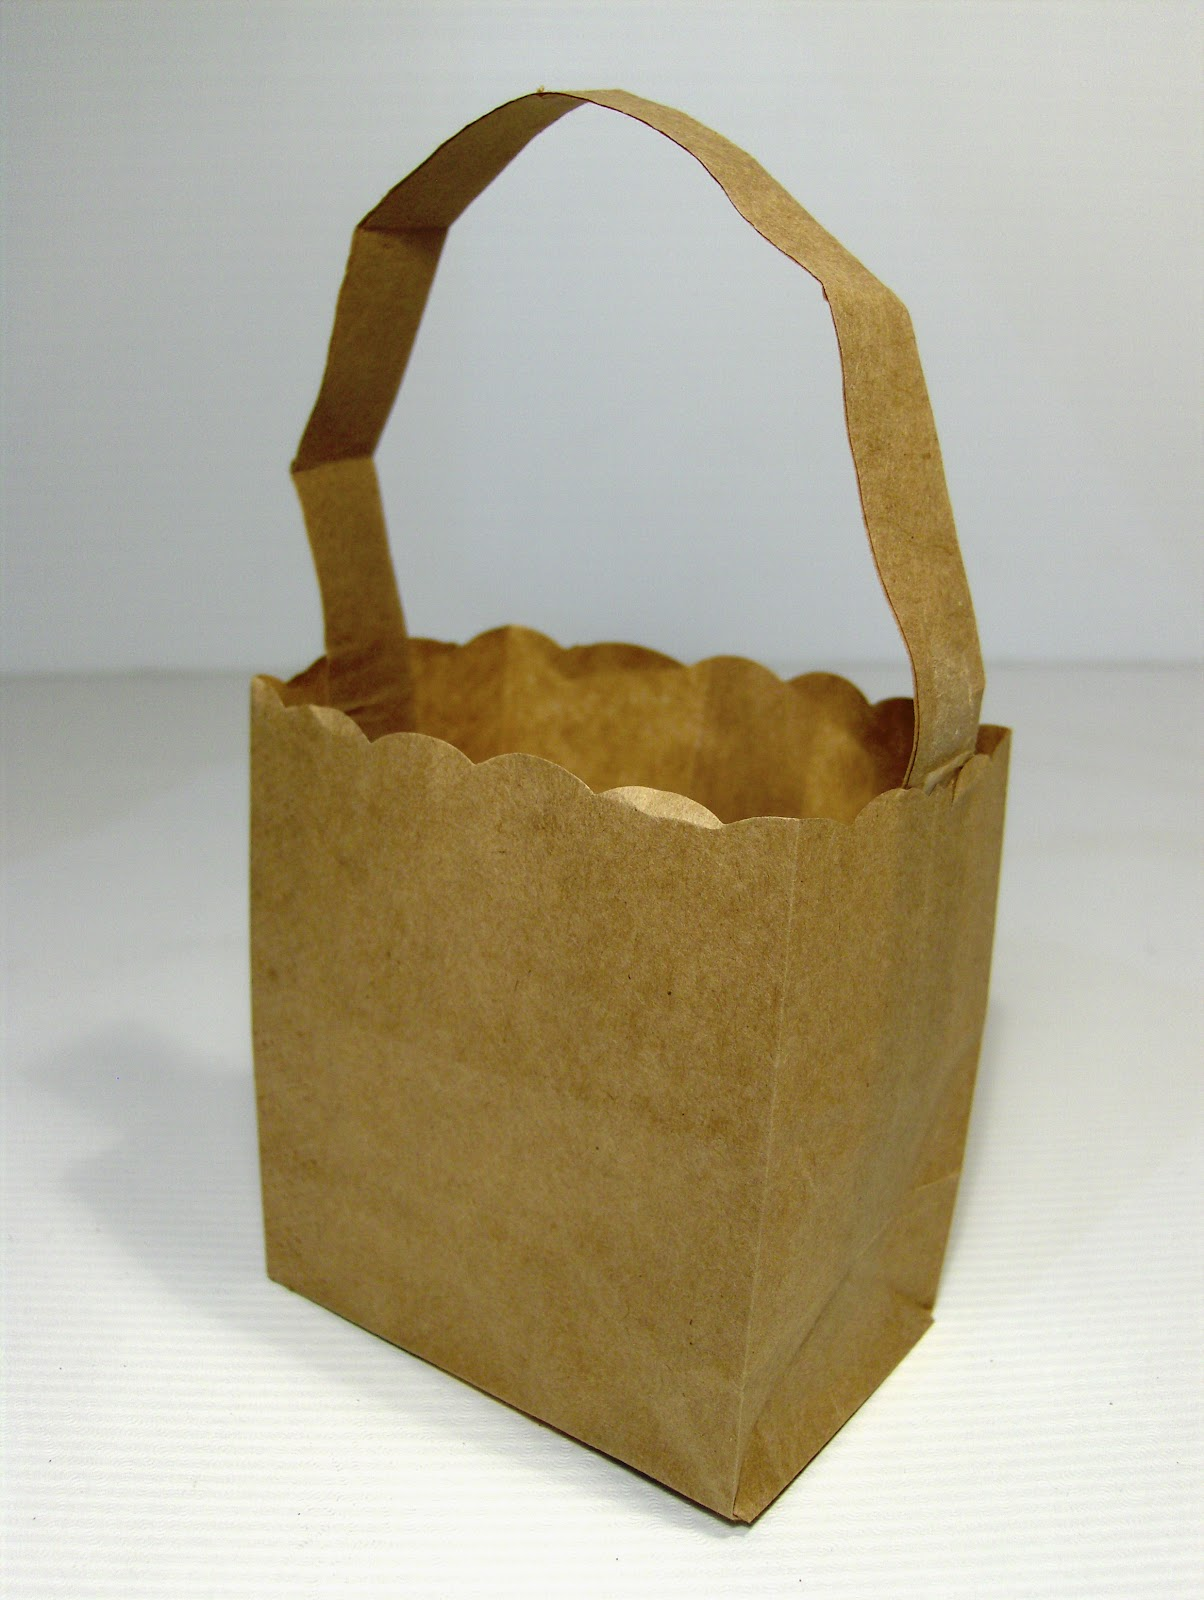 Congratulations on your new blog!! I just love the look of the basket. Unfortunately our grocery stores stopped packing in brown paper bags years ago – they had switched to plastic – but now you have to have your own or pay 5 cents a plastic bag!!!